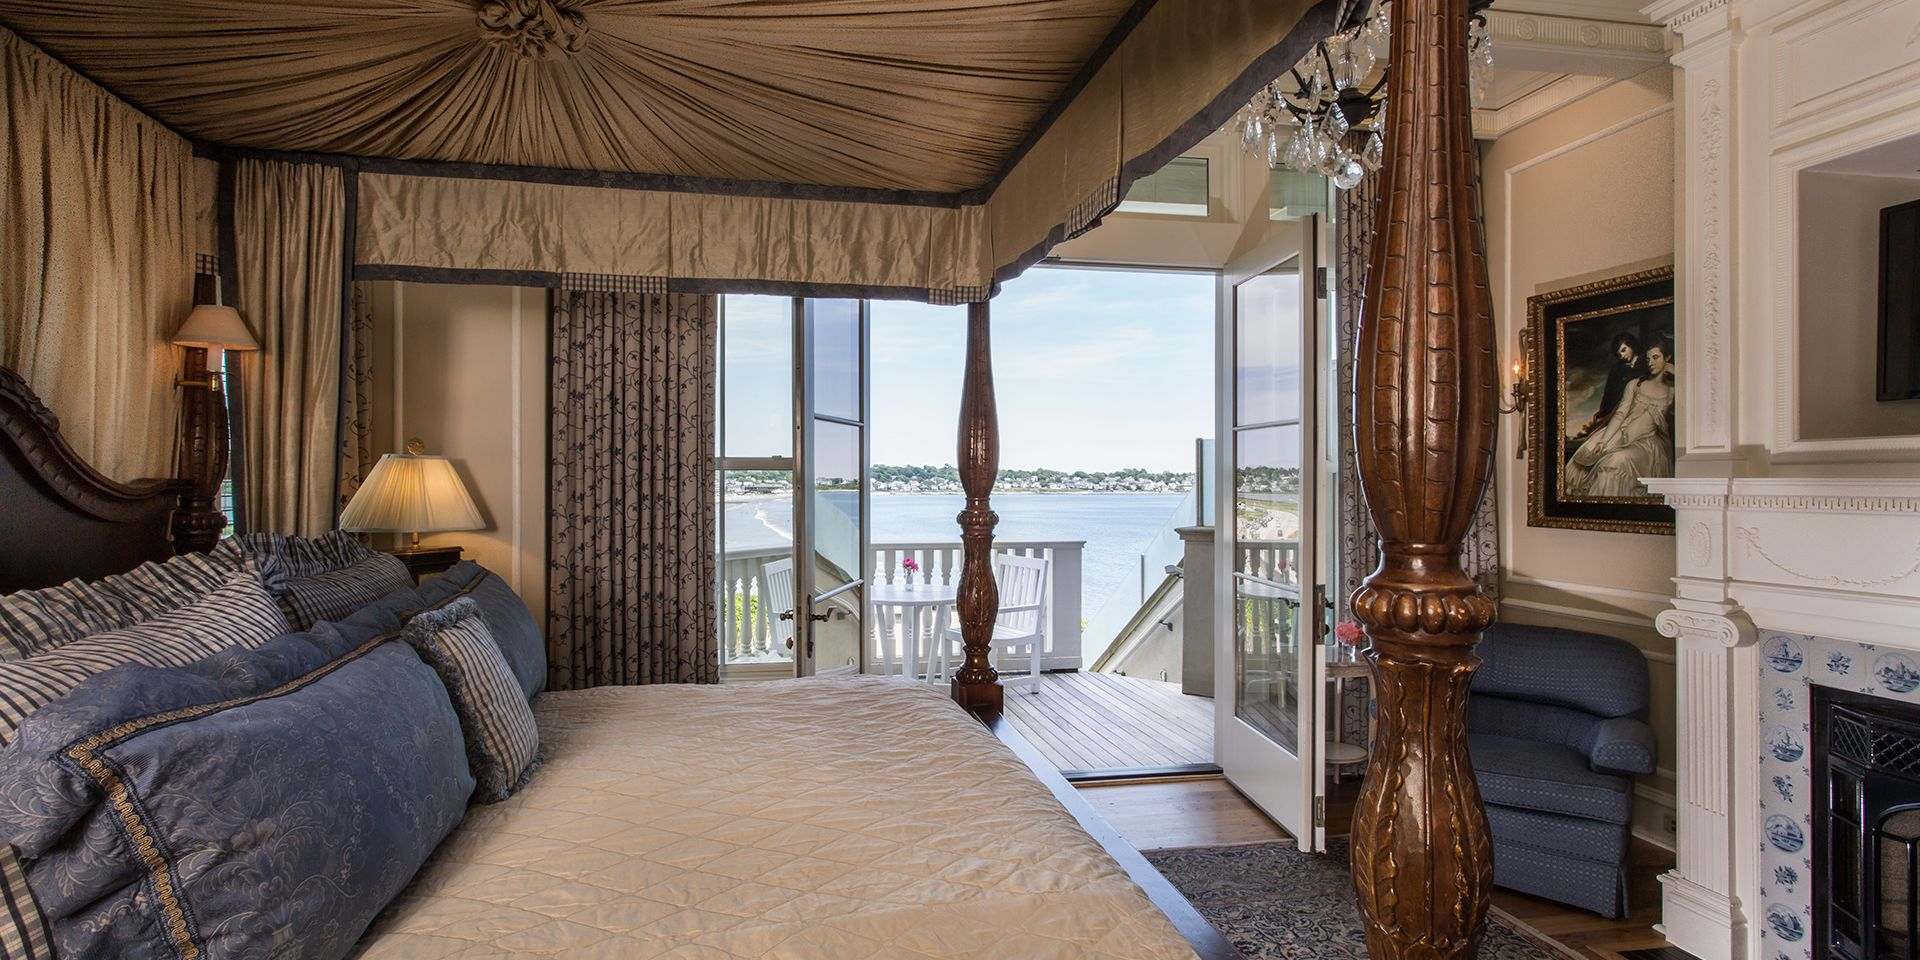 Bask in natural light and ocean breezes in your sand, sea, and sky-toned Martha's Vineyard Guest Room. Wake beside a glowing fireplace in a full-canopied four-poster king bed decorated with plush linens inside your private ocean villa